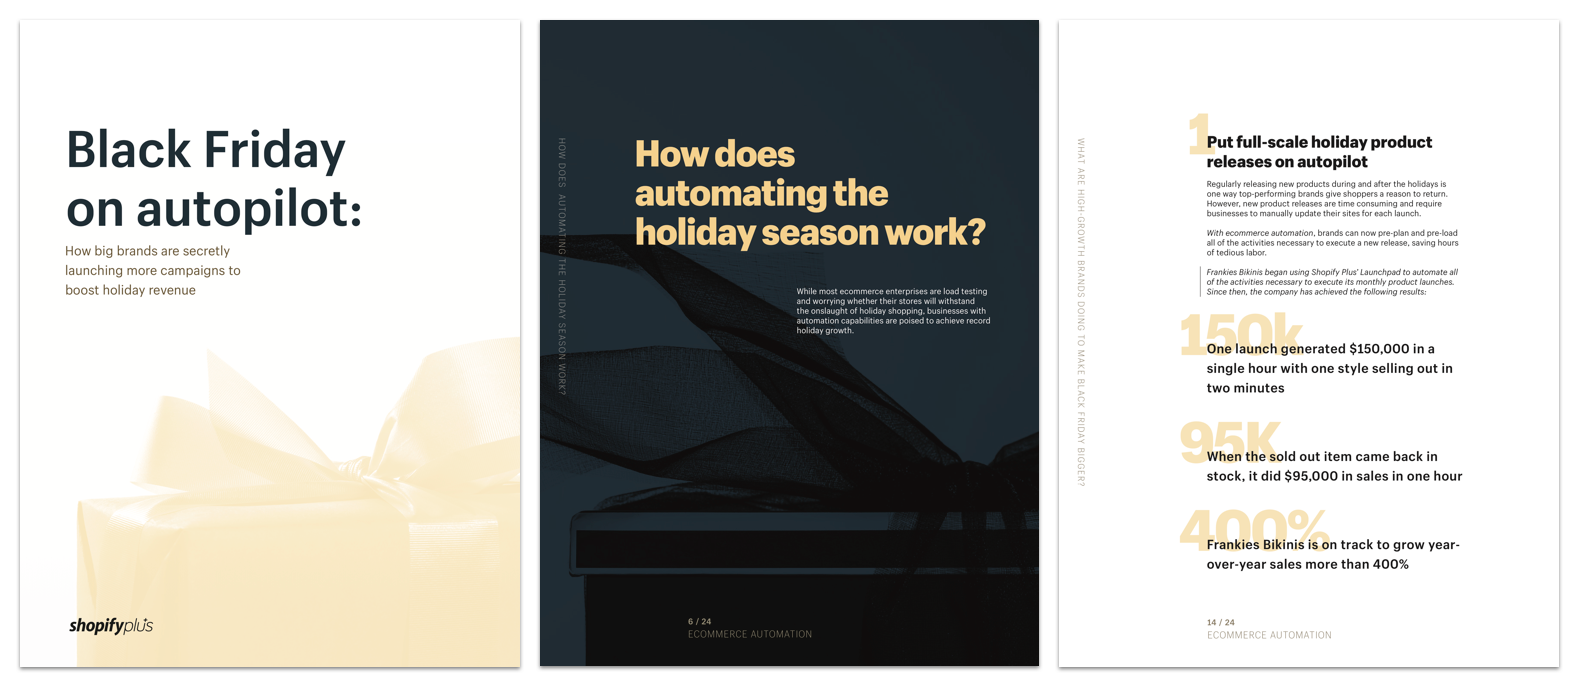 b9819ca93 Sample pages on using automation as a holiday ecommerce strategy